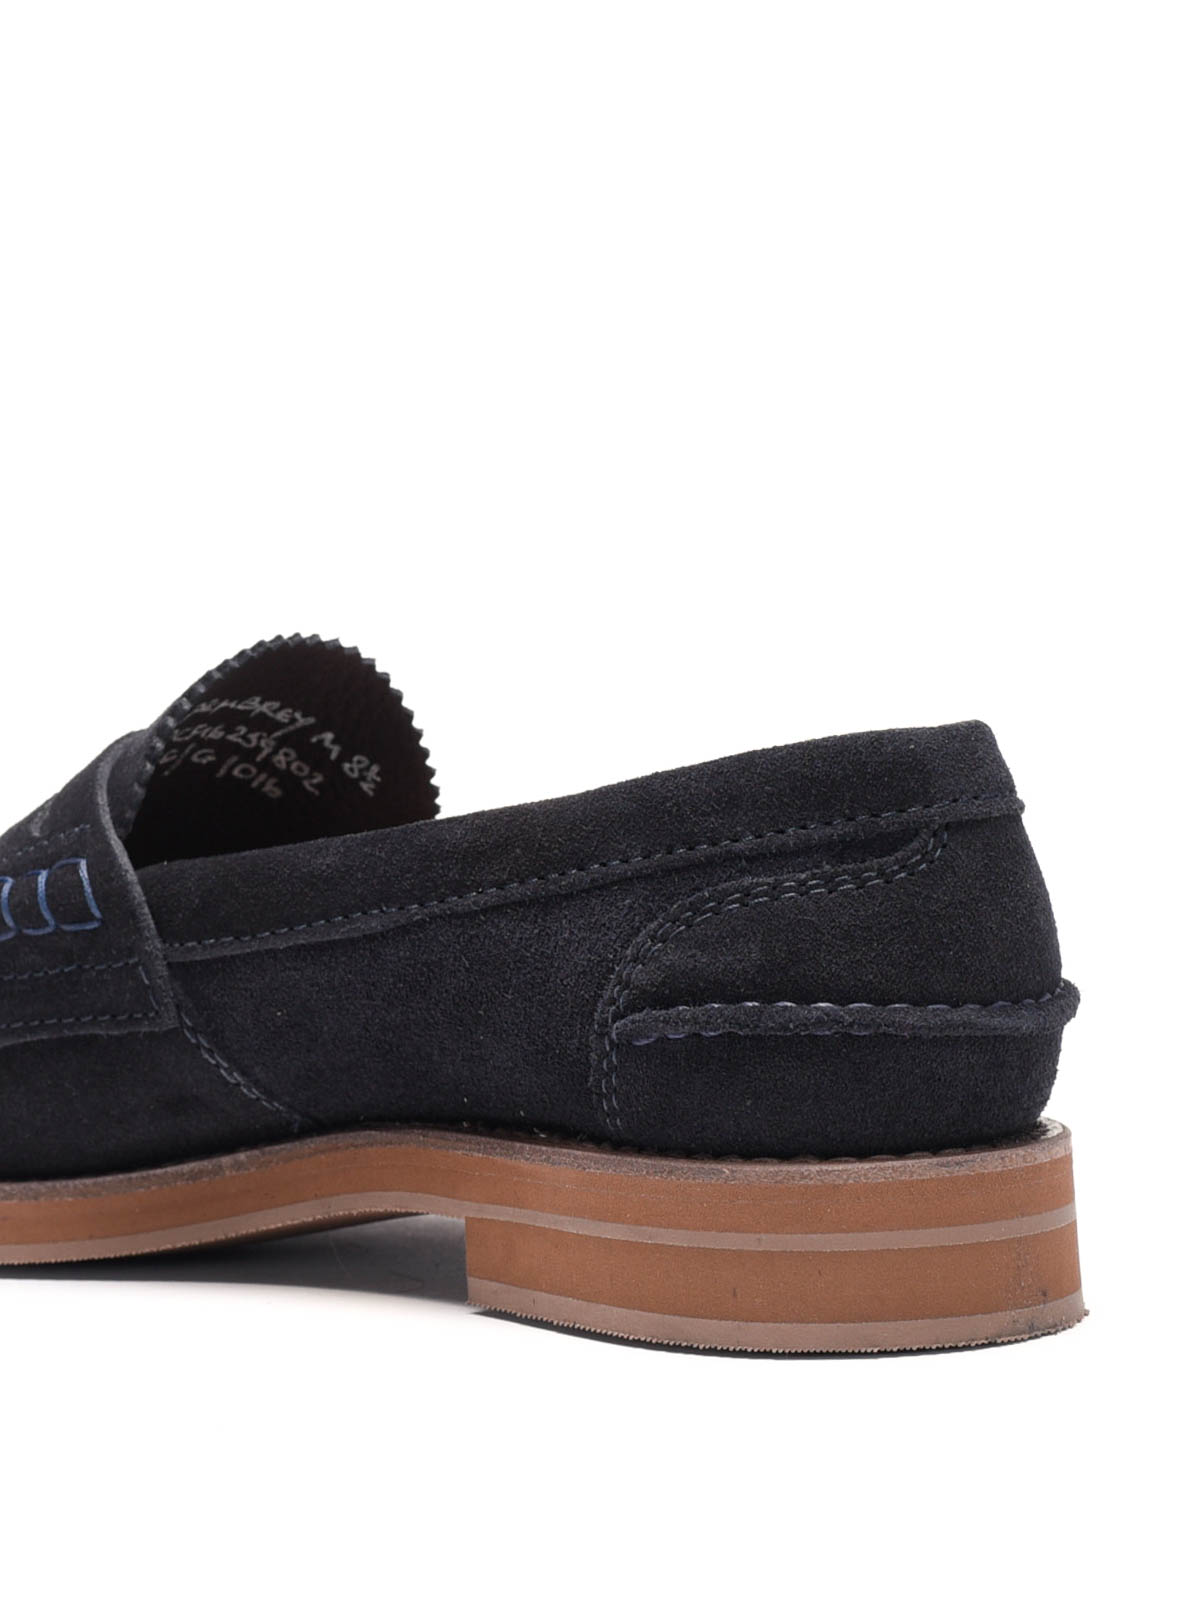 d44fa1190a1 Church s - Pembrey suede penny loafers - Loafers   Slippers ...